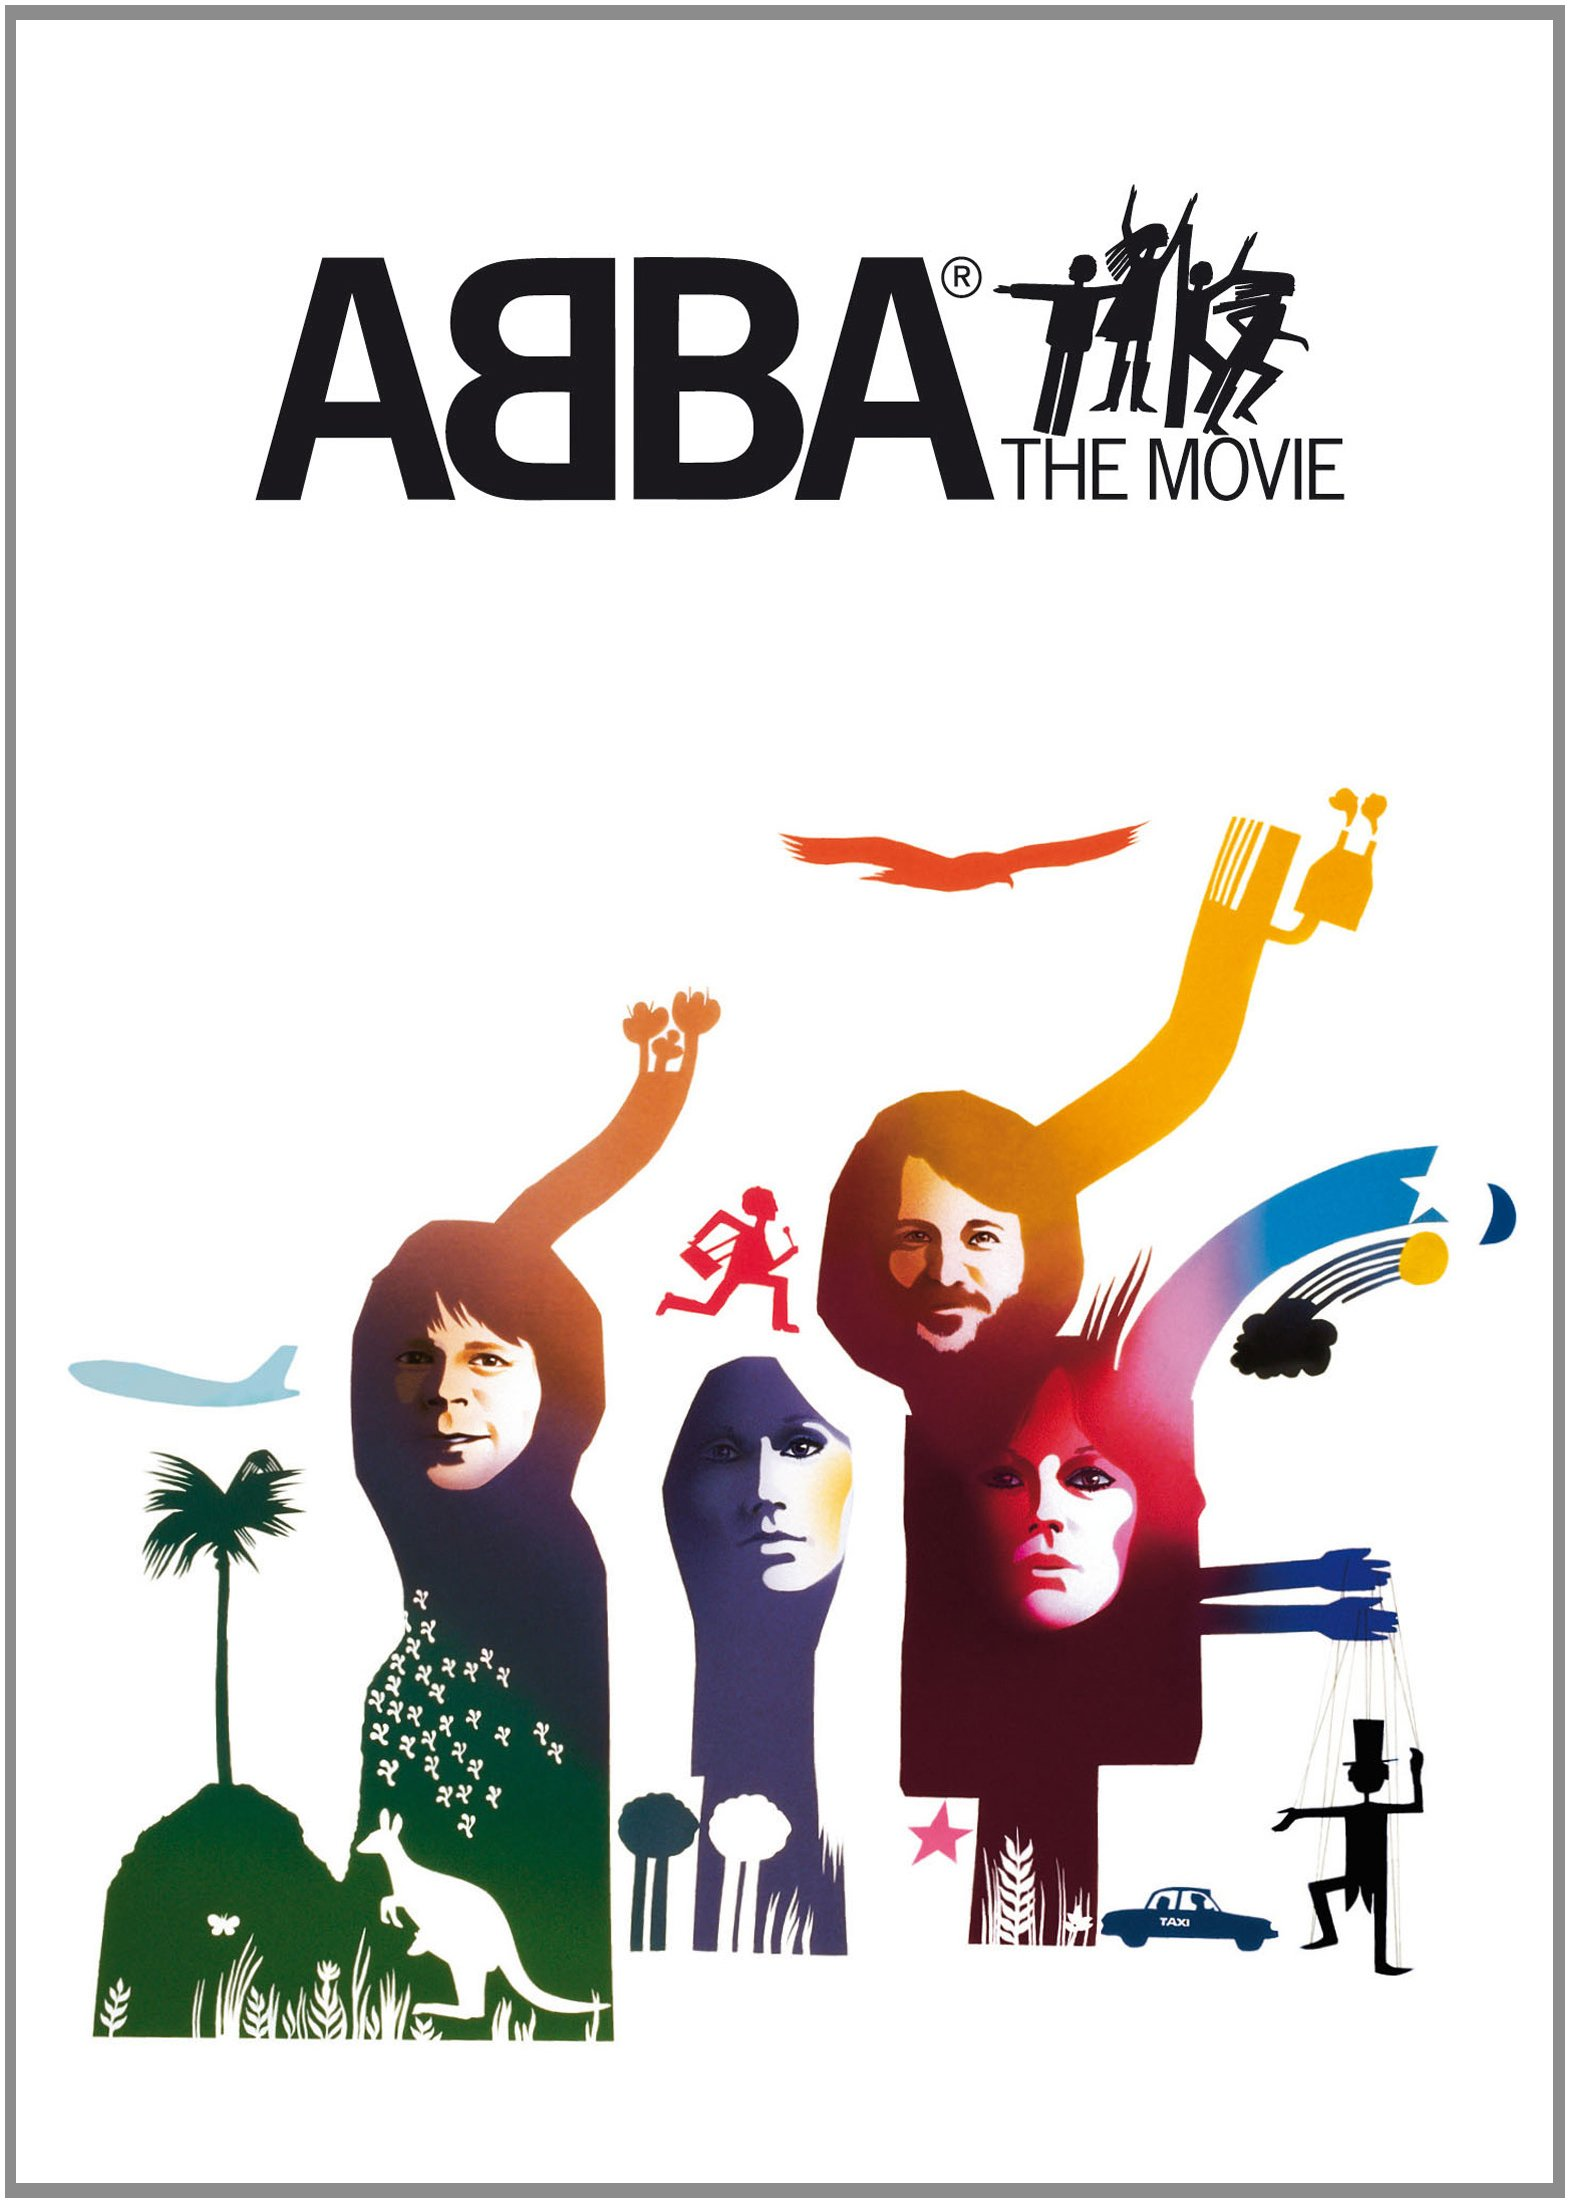 ABBA The Movie by Universal Music